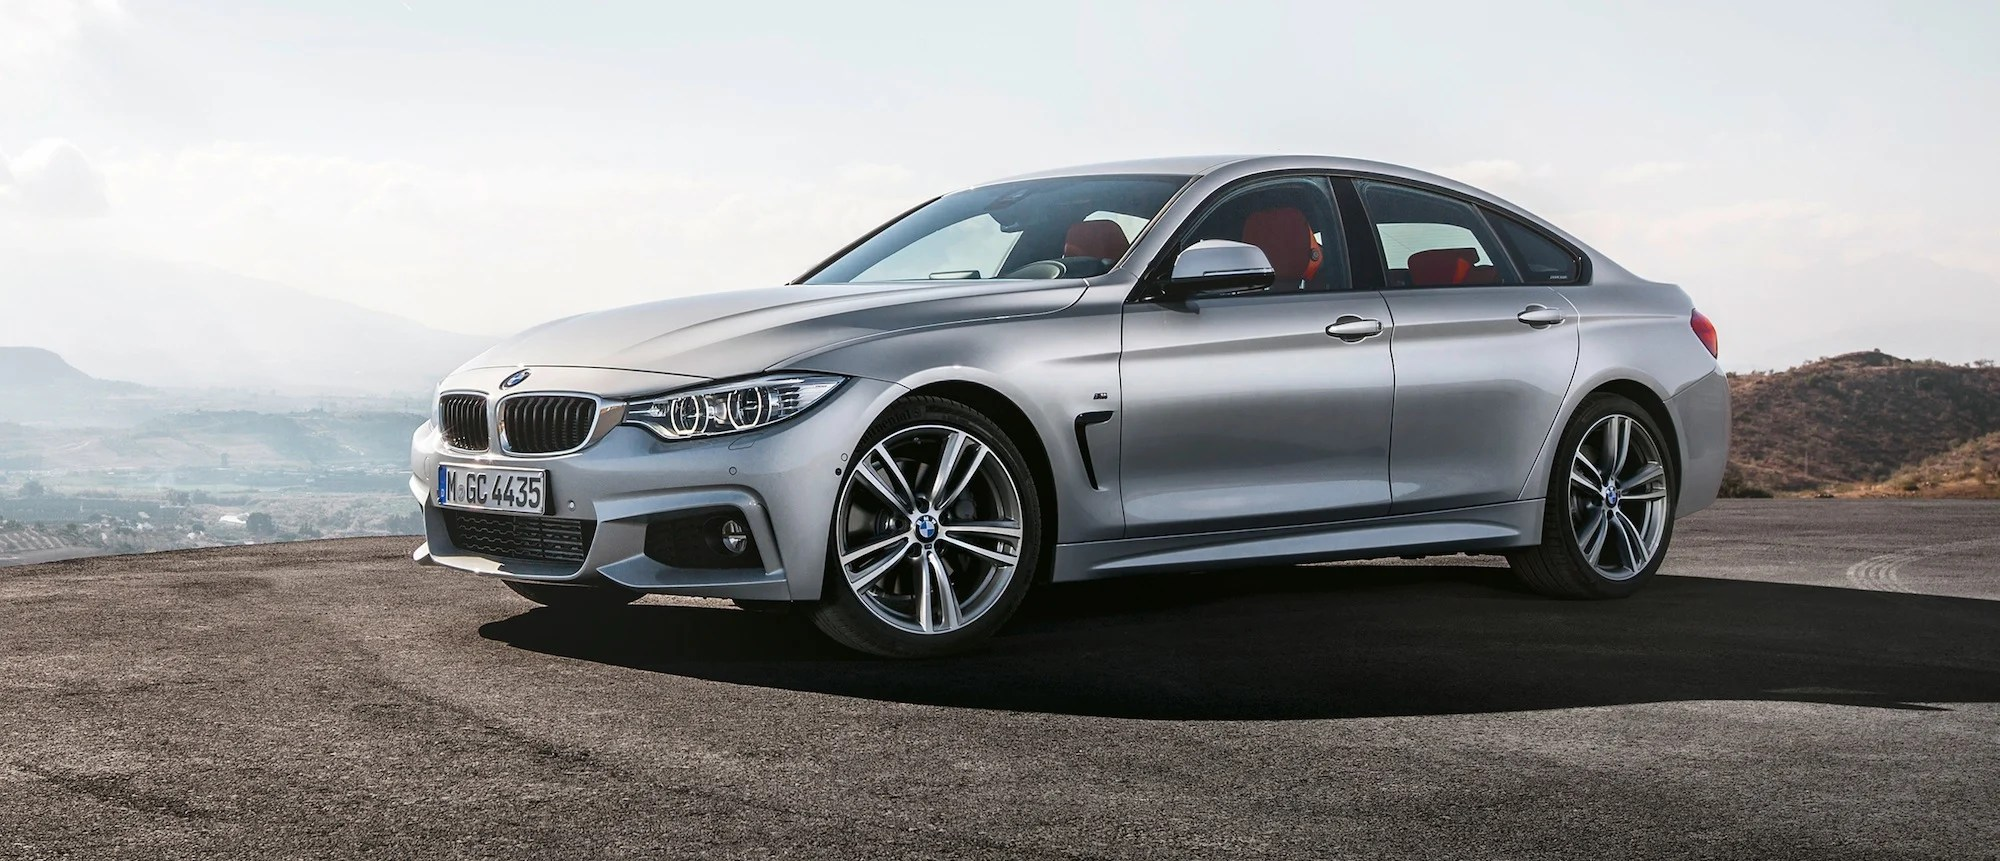 Bmw 4 Series Gran Coupe Dimensions Bmw 4 Series Gran Coupe Four Door Hatchback Revealed